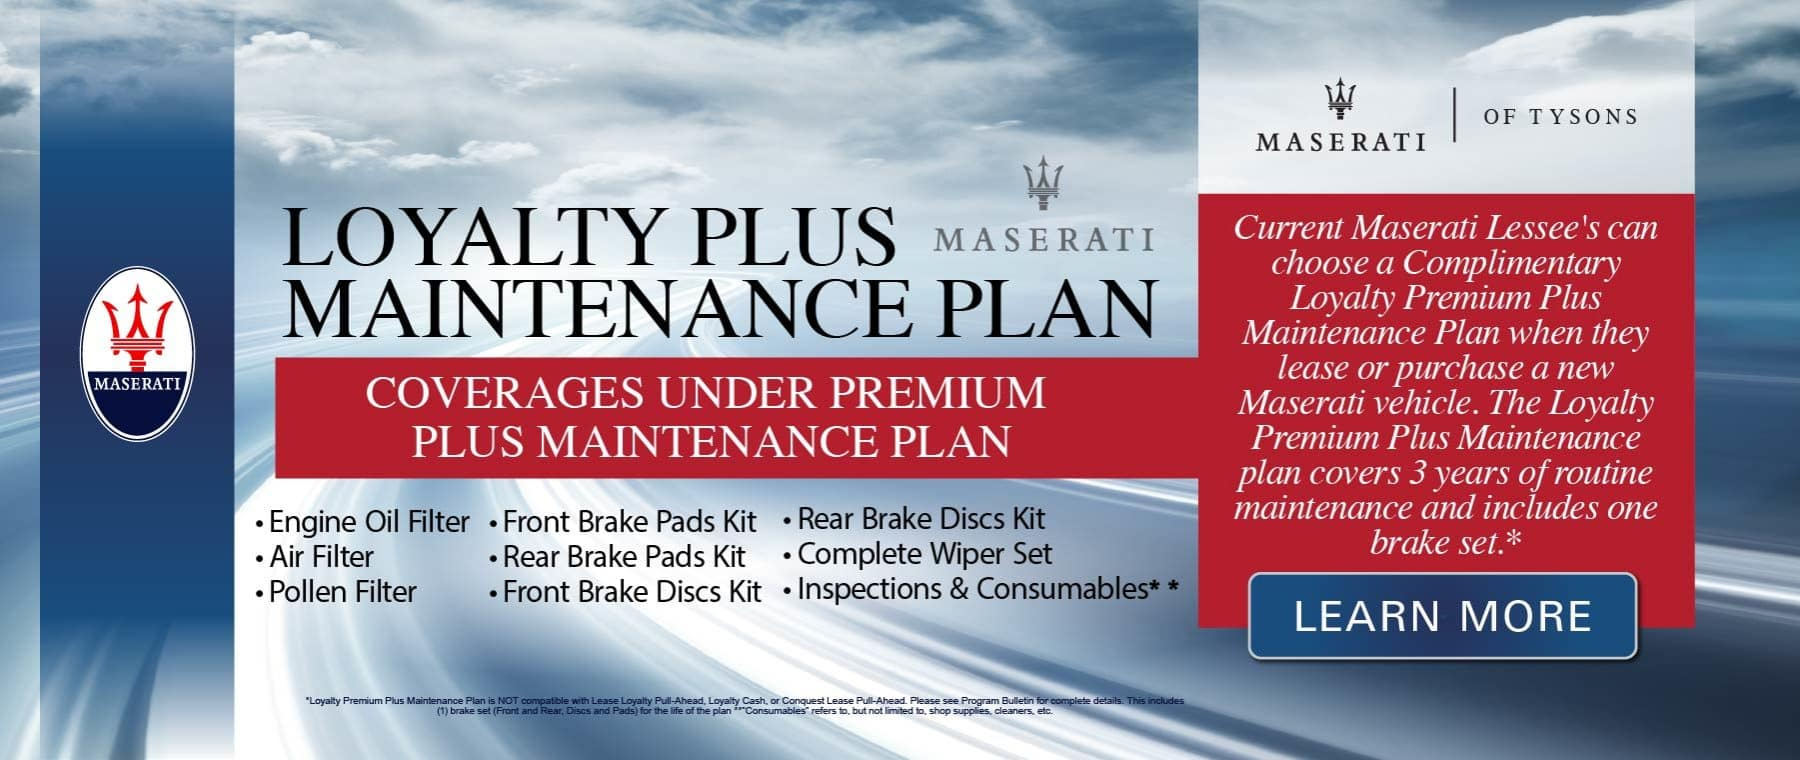 Maserati Of Tysons- LOYALTY PLUS MAINTENANCE PLAN-COVERAGES UNDER PREMIUM PLUS MAINTENANCE PLAN • Front Brake Pads Kit • Rear Brake Pads Kit • Front Brake Discs Kit • Rear Brake Discs Kit • Complete Wiper Set • Inspections & Consumables Current Maserati Lessee's can choose a Complimentary Loyalty Premium Plus Maintenance Plan when they lease or purchase a new Maserati vehicle. The Loyalty Premium Plus Maintenance plan covers 3 years of routine maintenance and includes one brake set.* Learn more.